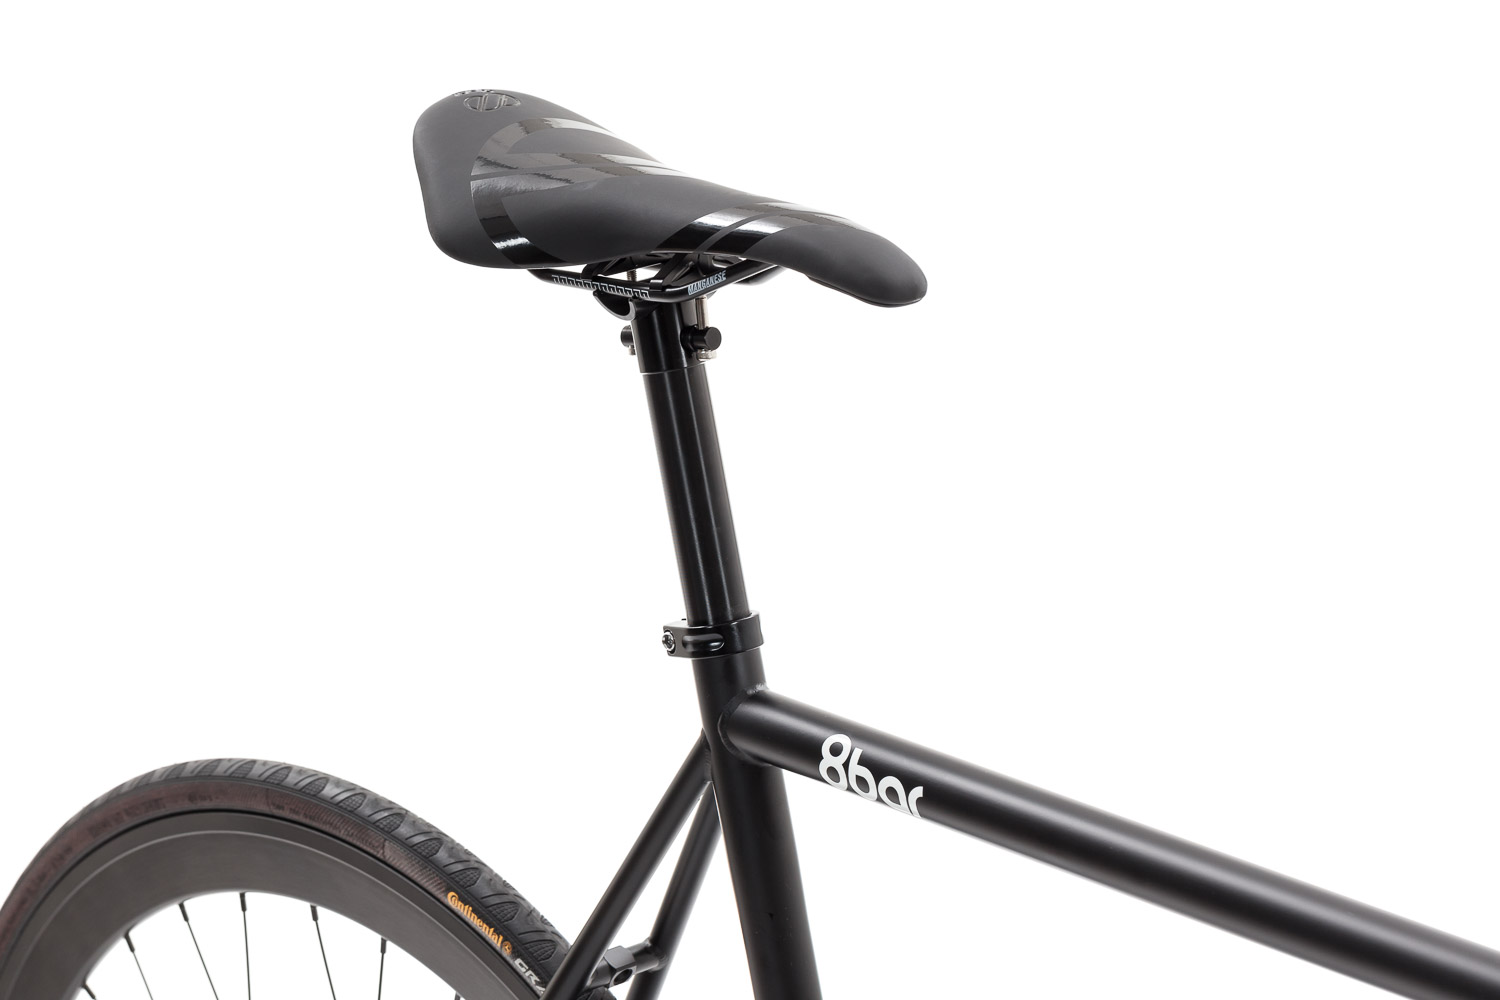 8bar-neukln-pro-black-bullhorn-fixie-fixed-gear-4